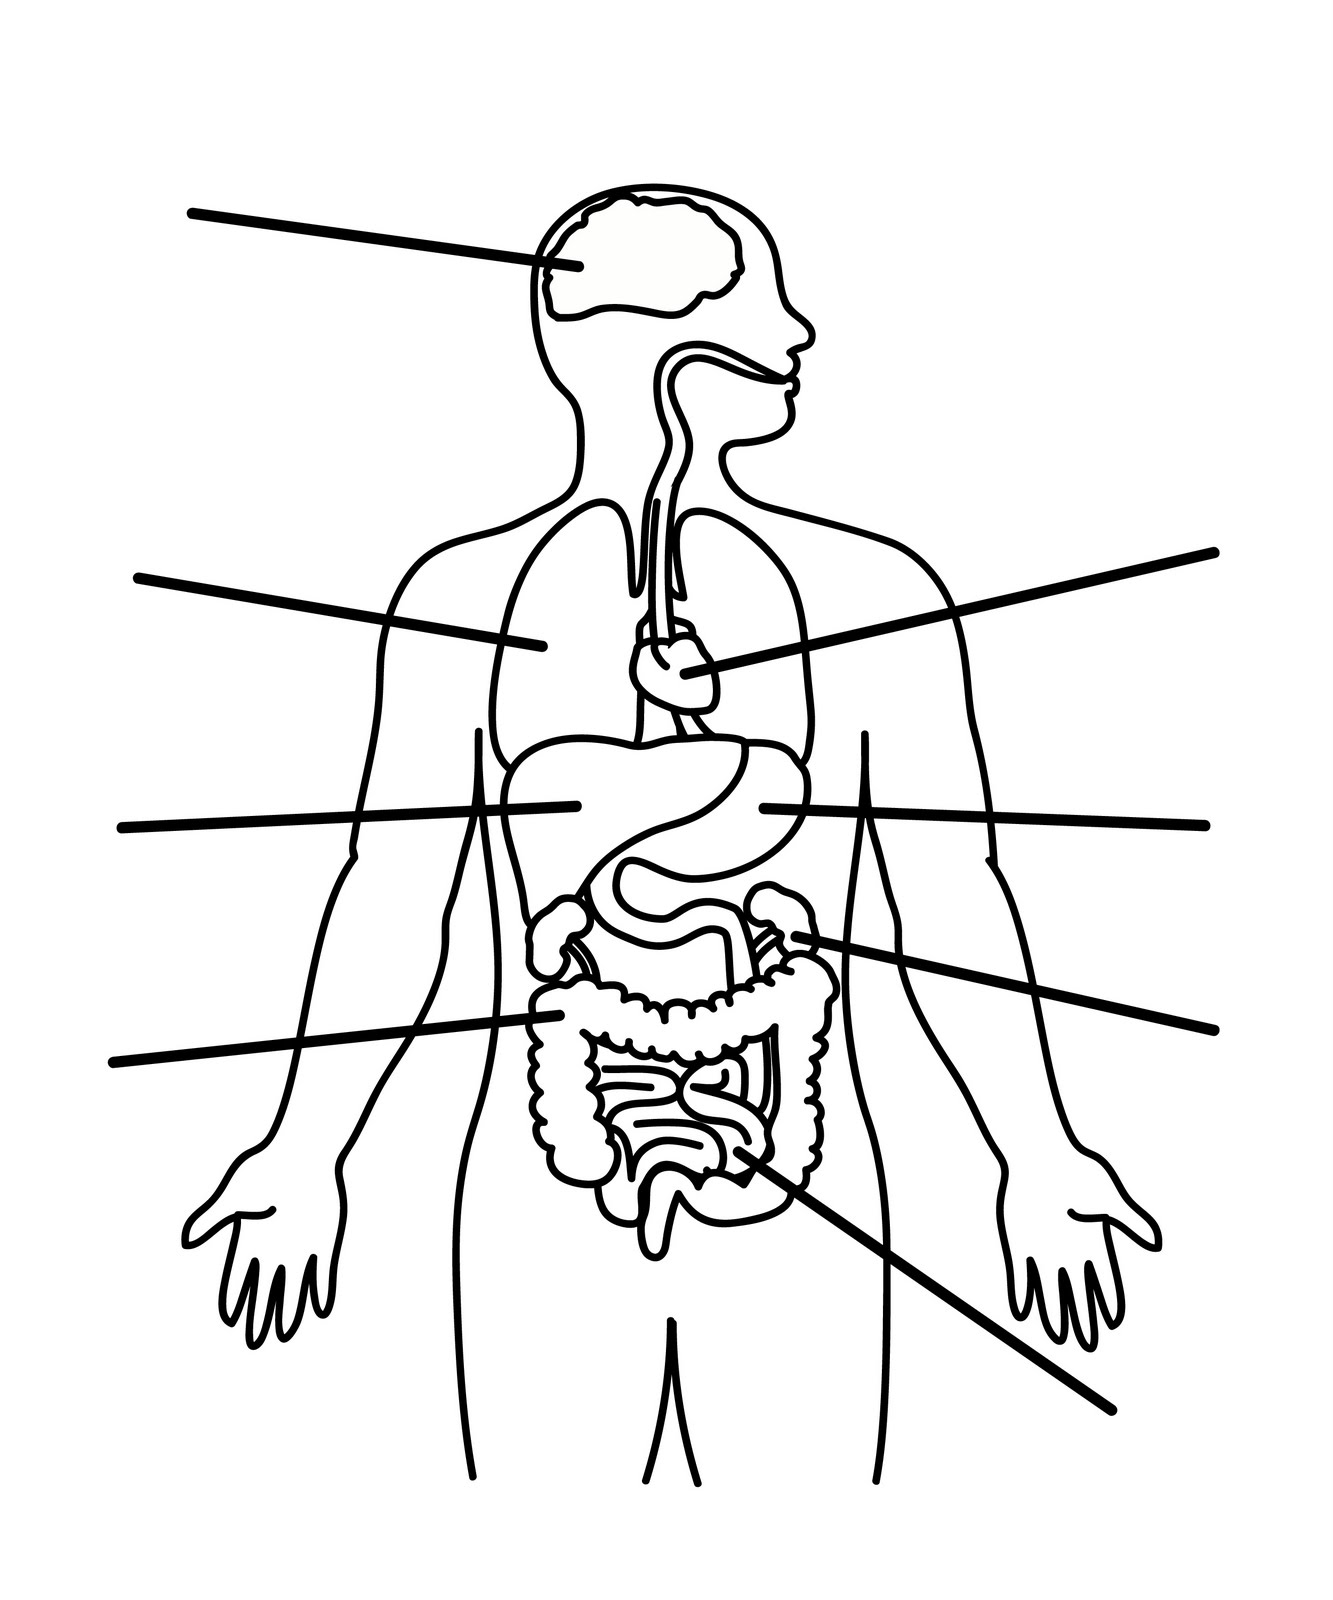 Outline Of A Body